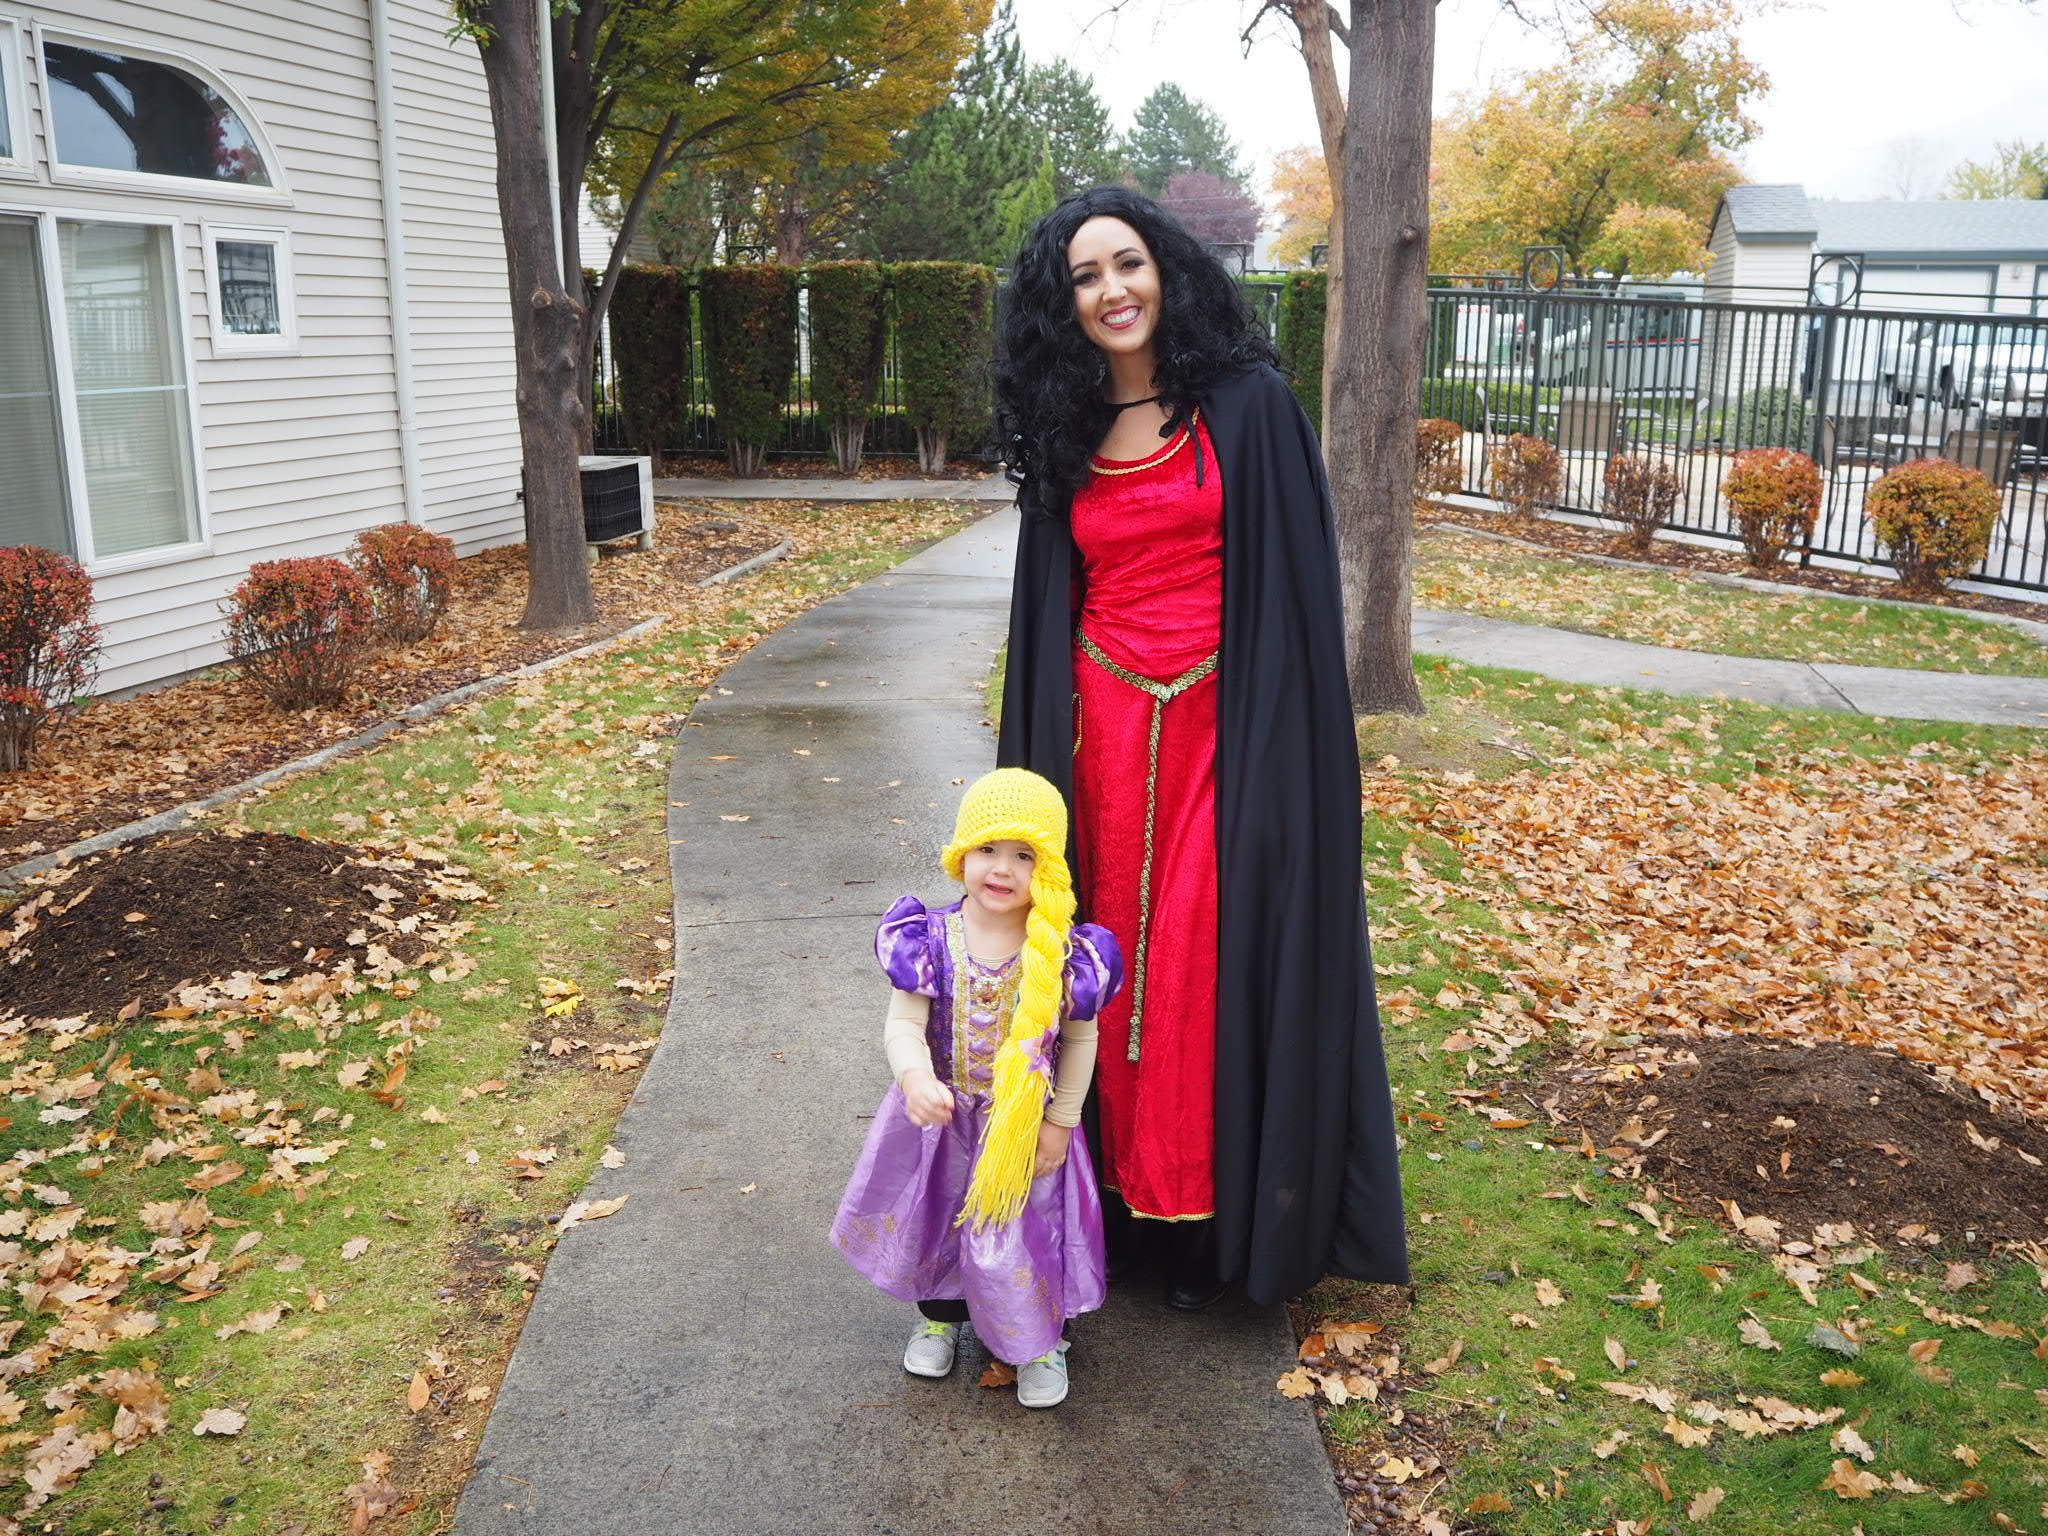 Rapunzel And Mother Gothel Halloween Costume Family Costume Mother Daughter Halloween Costumes Rapunzel Halloween Costume Mother Daughter Halloween Costumes